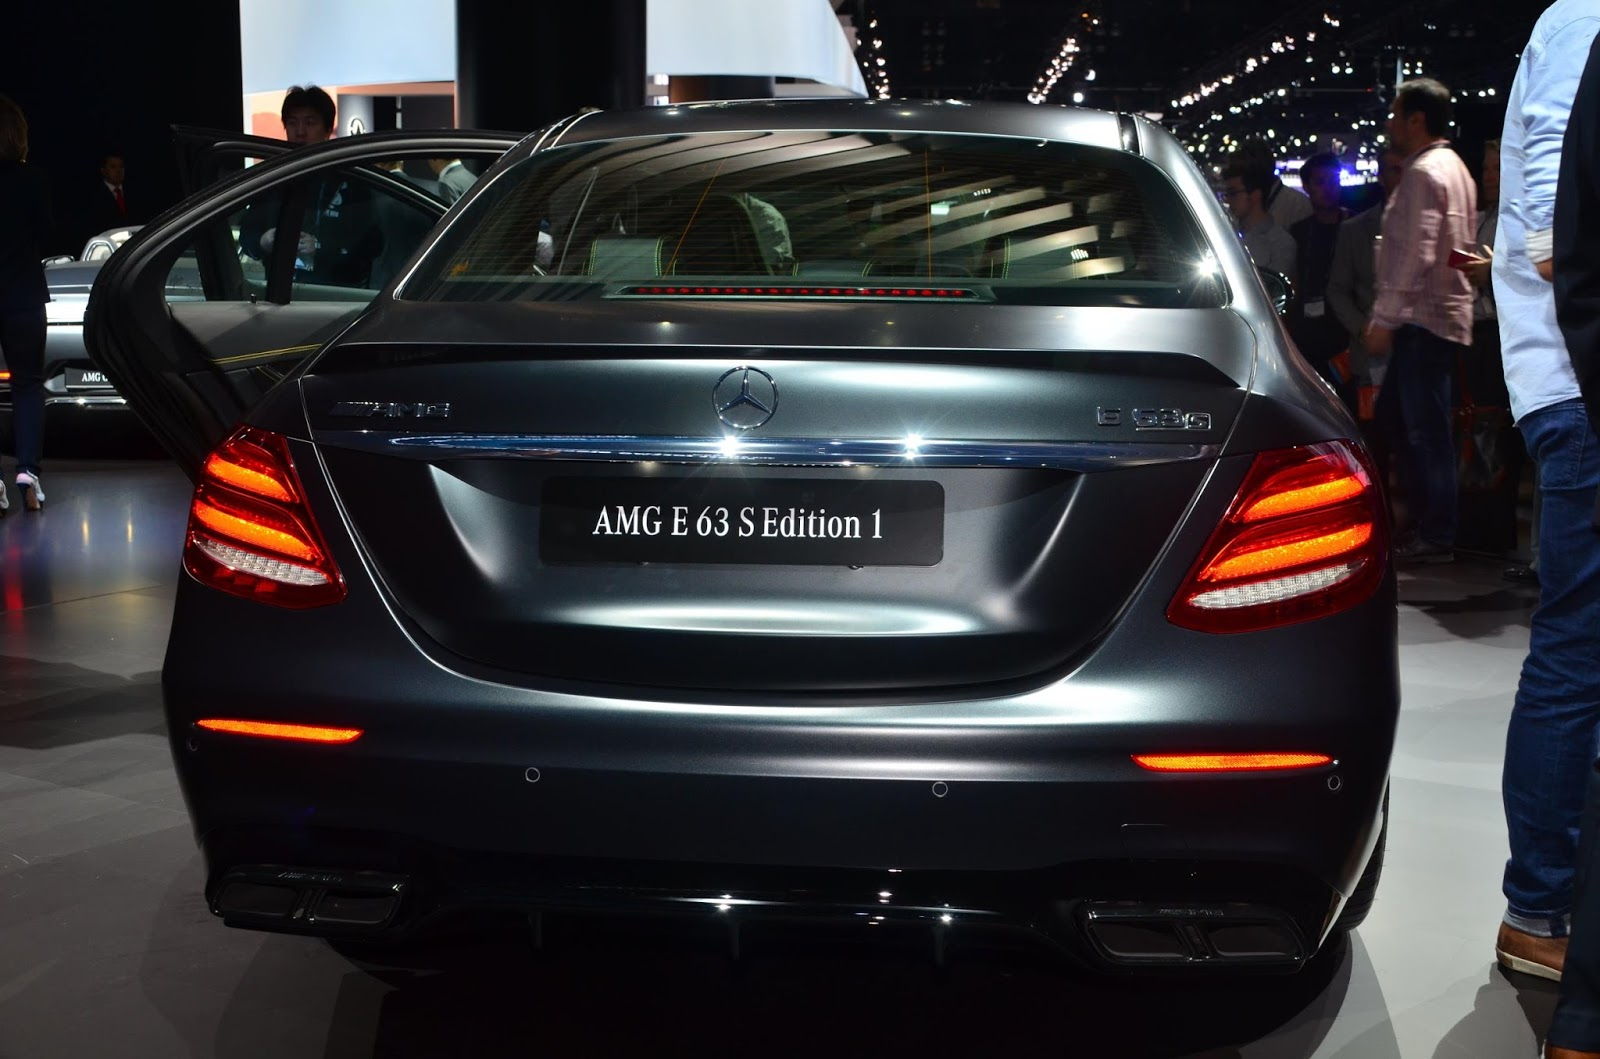 New Mercedes-AMG E63 S Edition 1 Has A Sinister Looking Paintjob